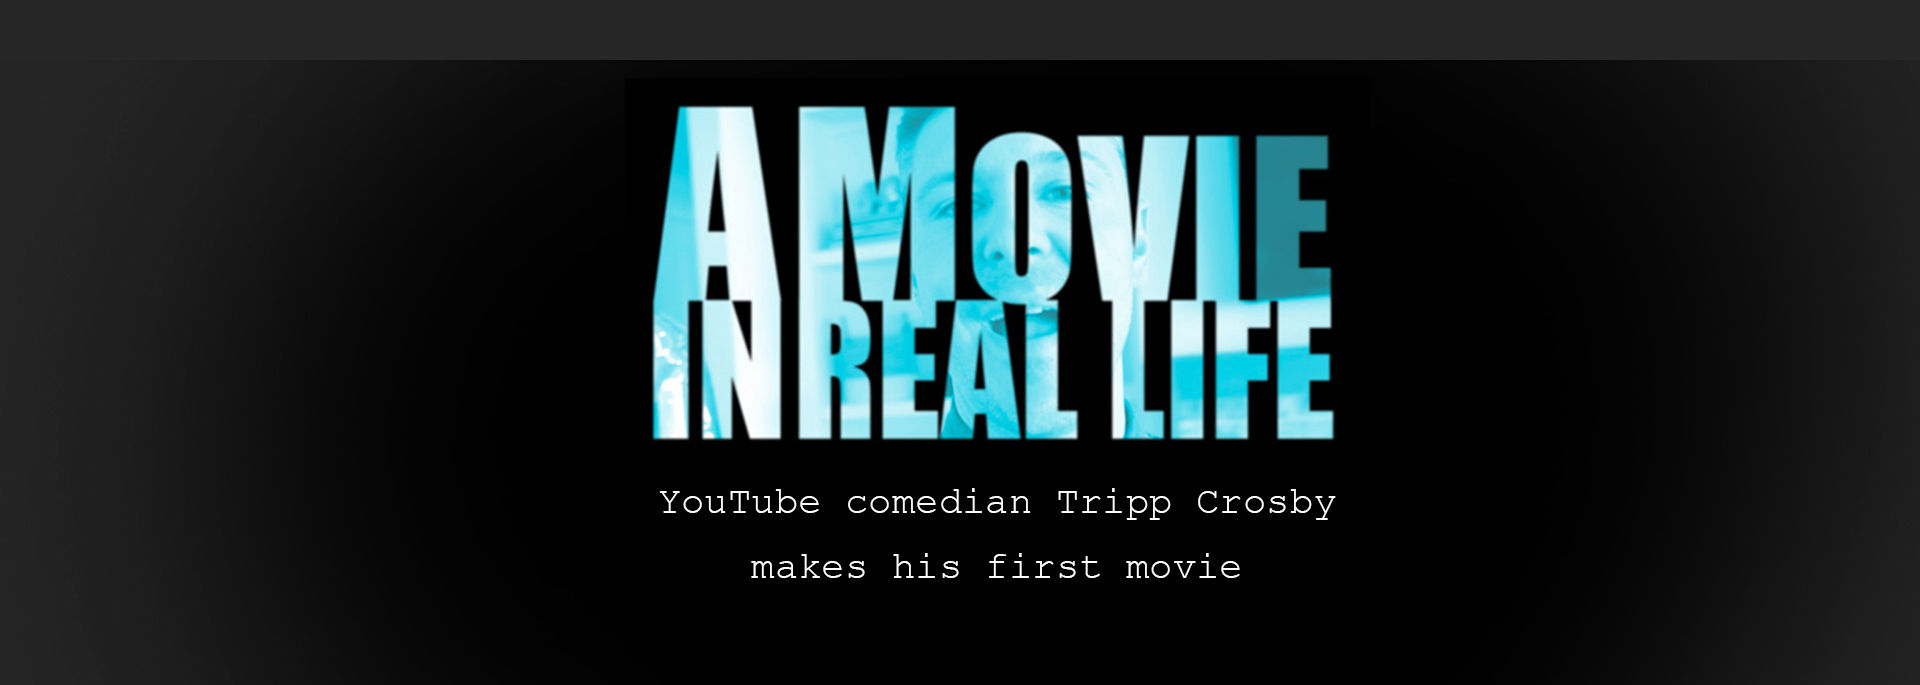 A Movie in Real Life channel